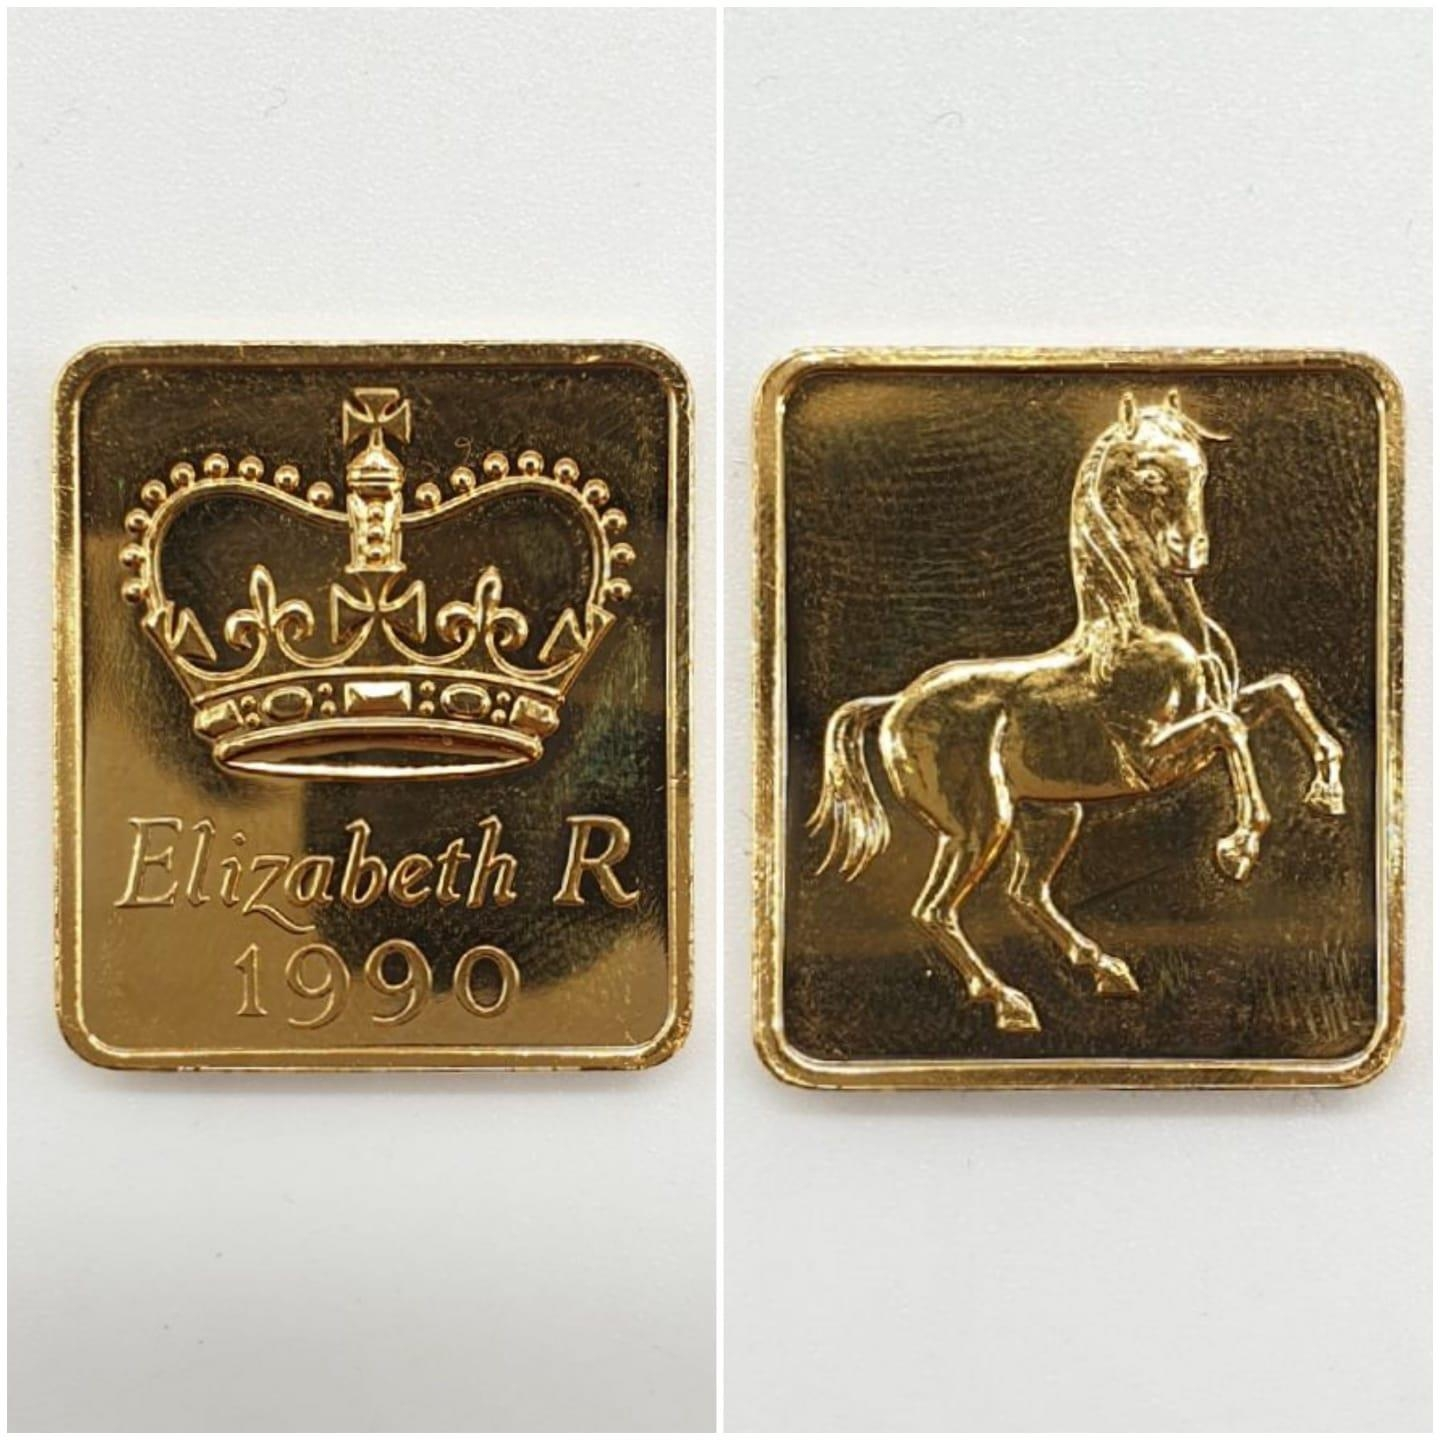 1990 UK GOLD PROOF SOVEREIGN 4 COIN COLLECTION TO INCLUDE A £5 COIN, A DOUBLE SOVEREIGN COIN, A - Image 2 of 5